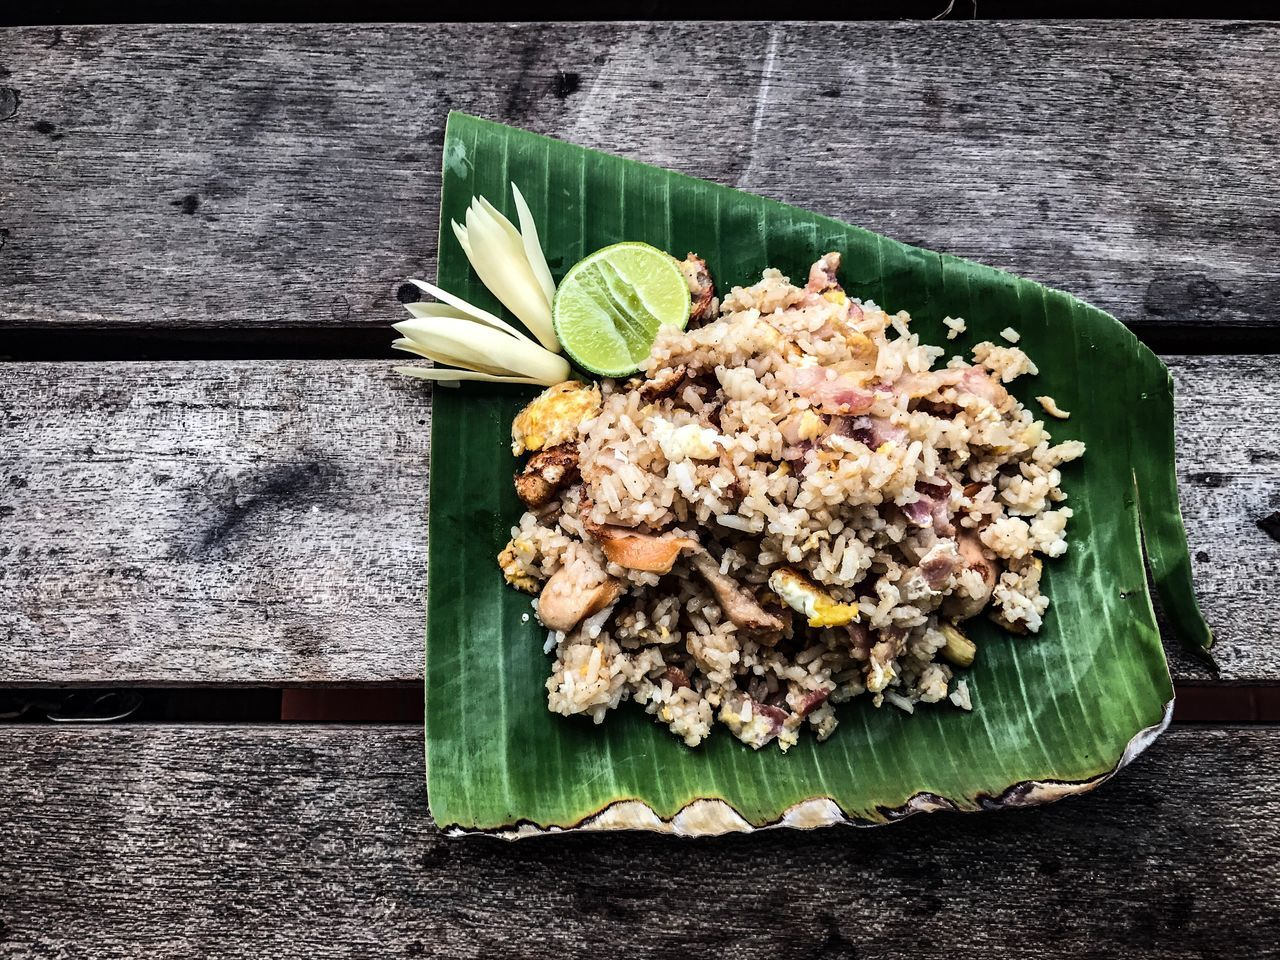 freshness, no people, food, healthy eating, vegetable, food and drink, plate, wood - material, banana leaf, green color, leaf, indoors, ready-to-eat, day, close-up